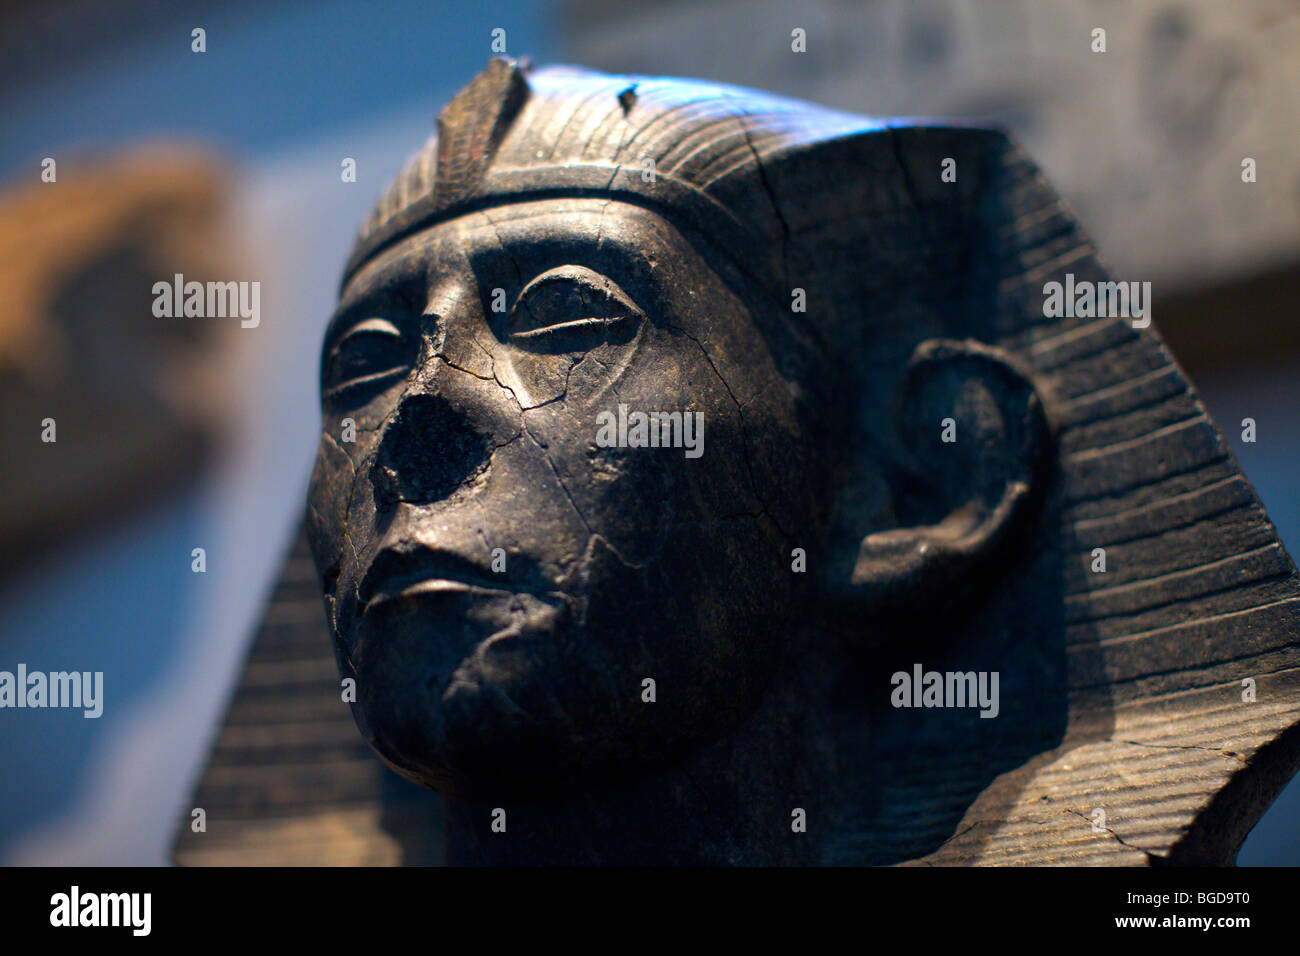 Close up of a defaced black granite statue of egyptian King Sesostris III from 1850BC in the British Museum in London - Stock Image